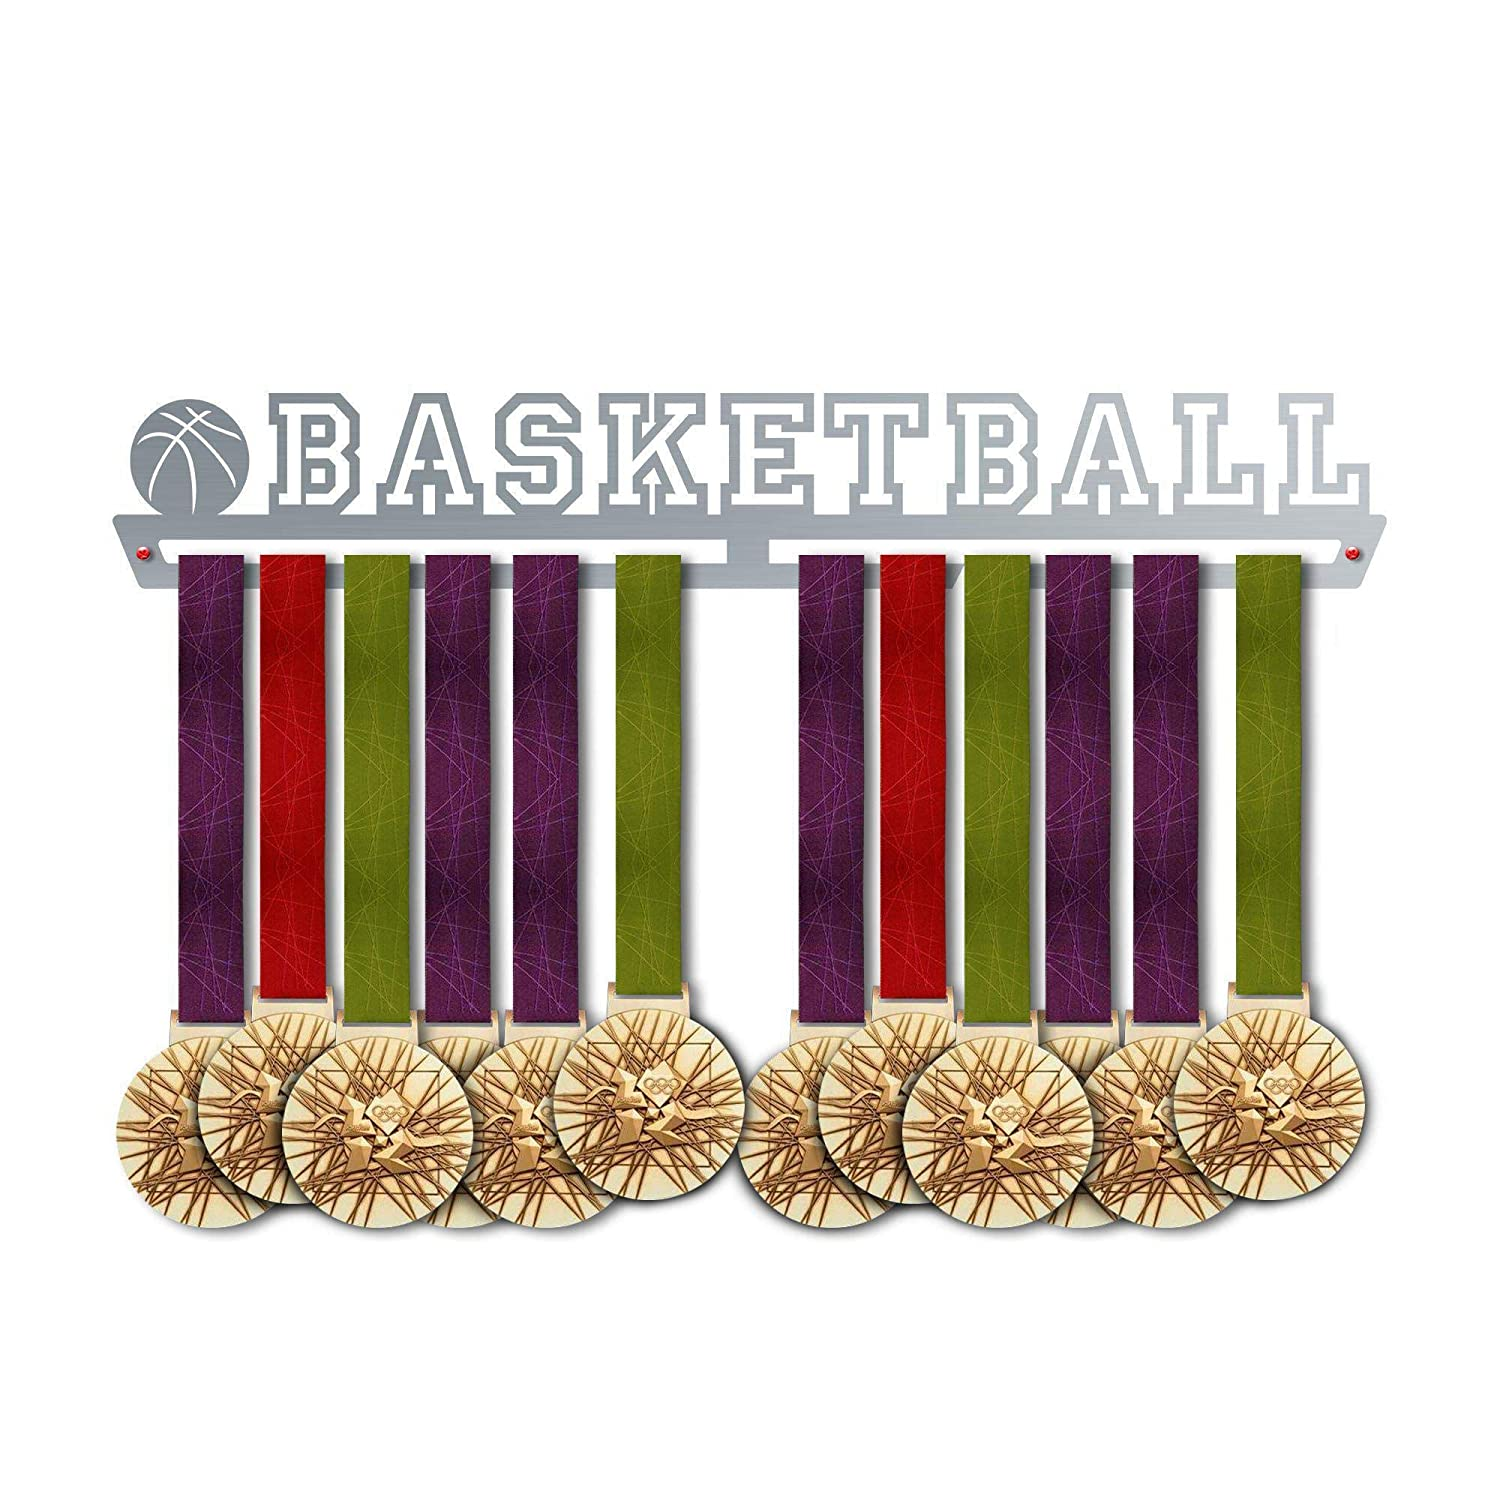 VICTORY HANGERS Basketball Medal Hanger Display